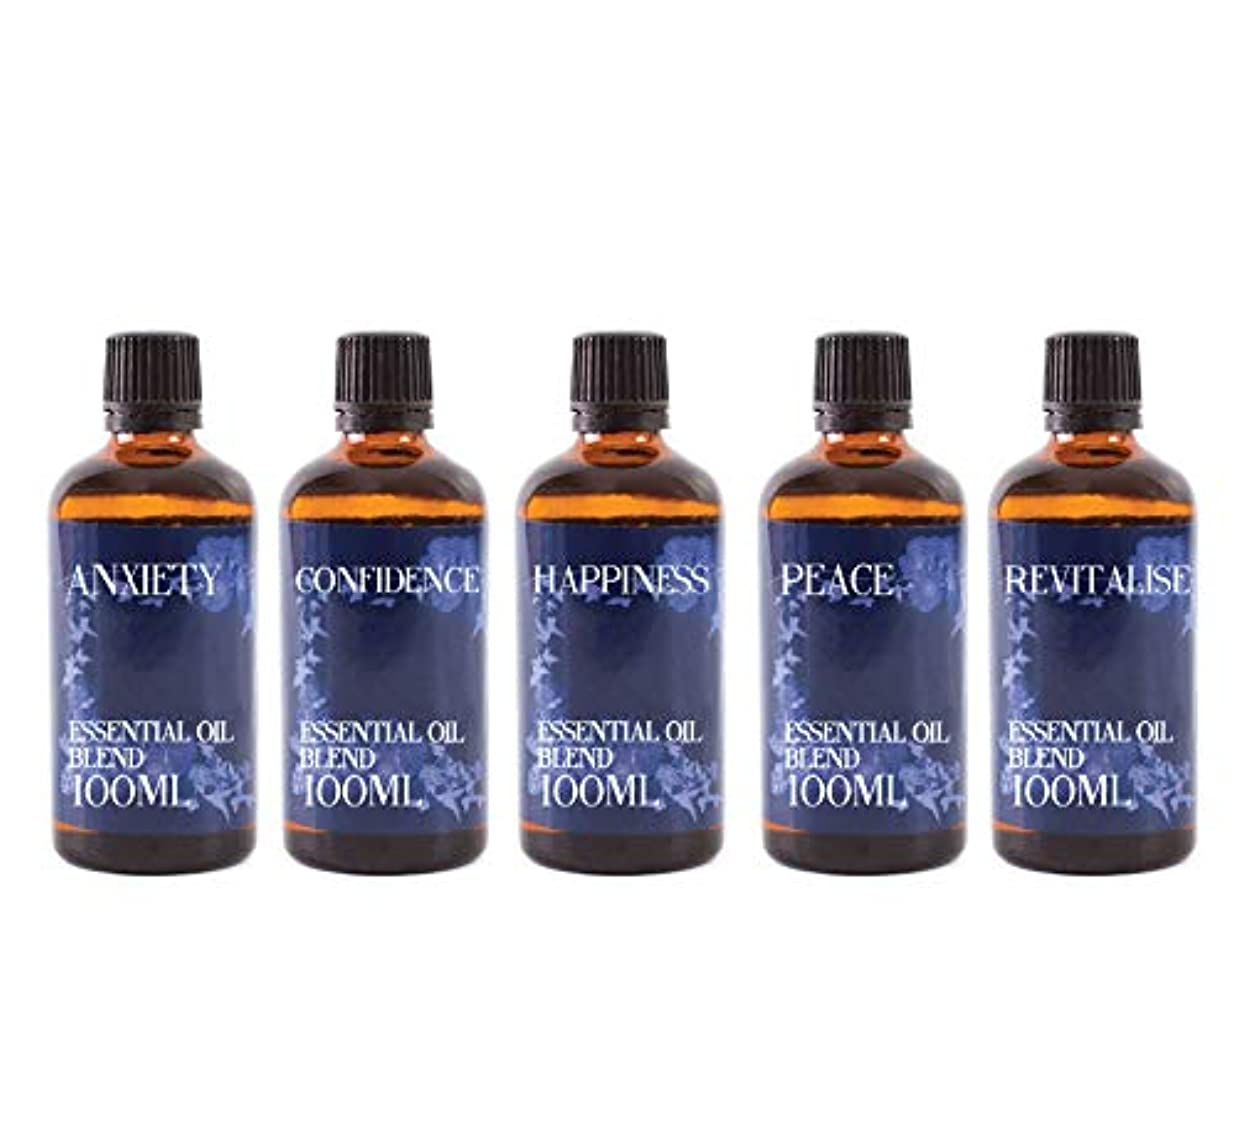 居眠りする航海ハロウィンMystix London | Gift Starter Pack of 5 x 100ml - Mental Wellbeing - Essential Oil Blends